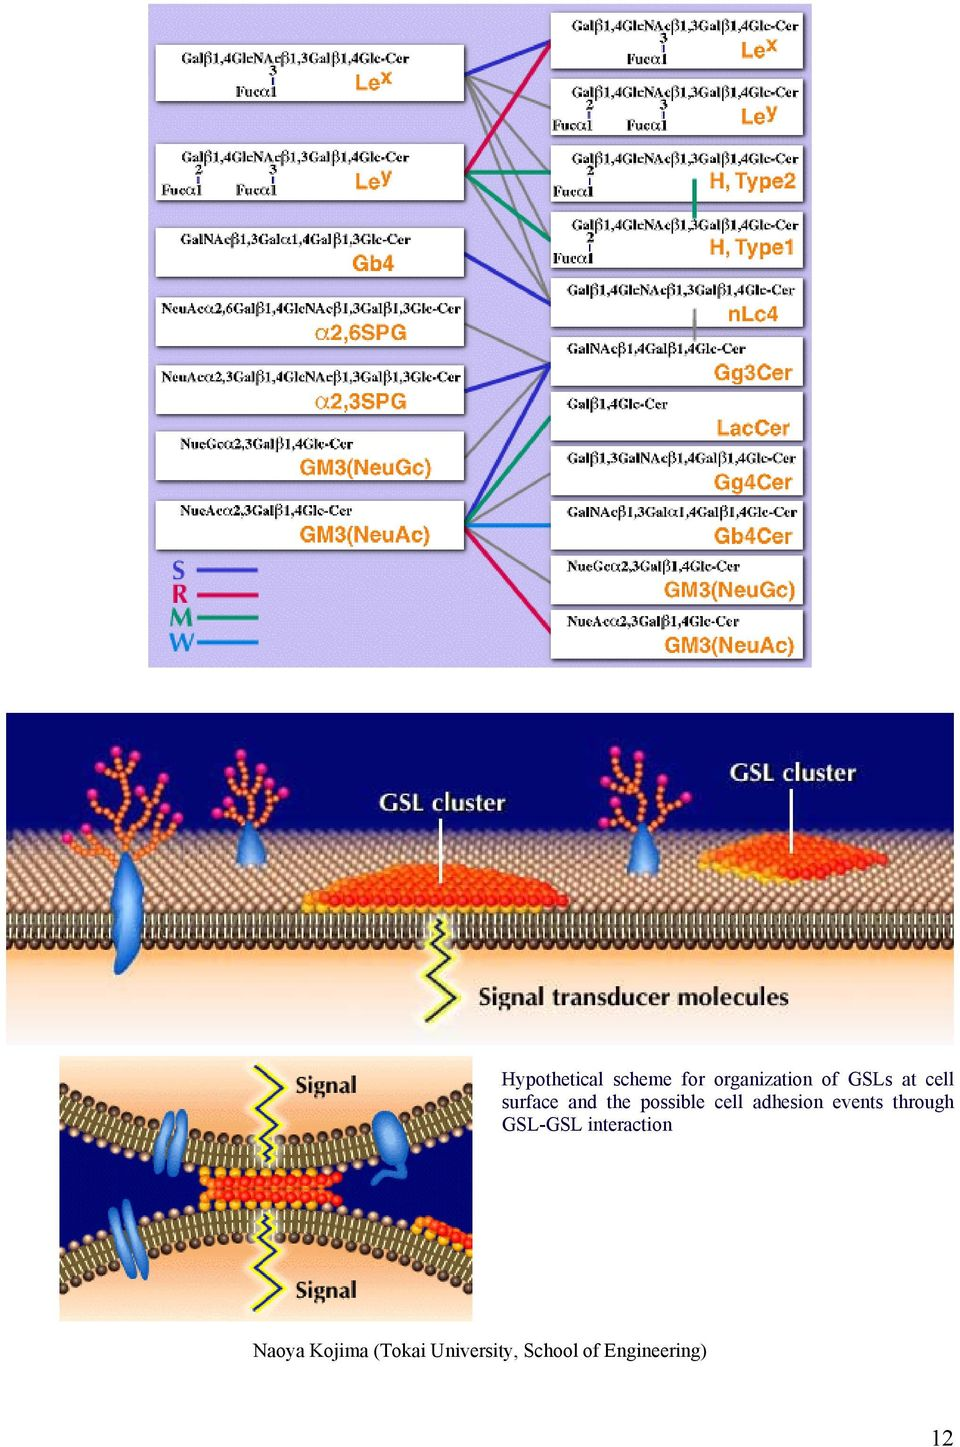 adhesion events through GSL-GSL interaction